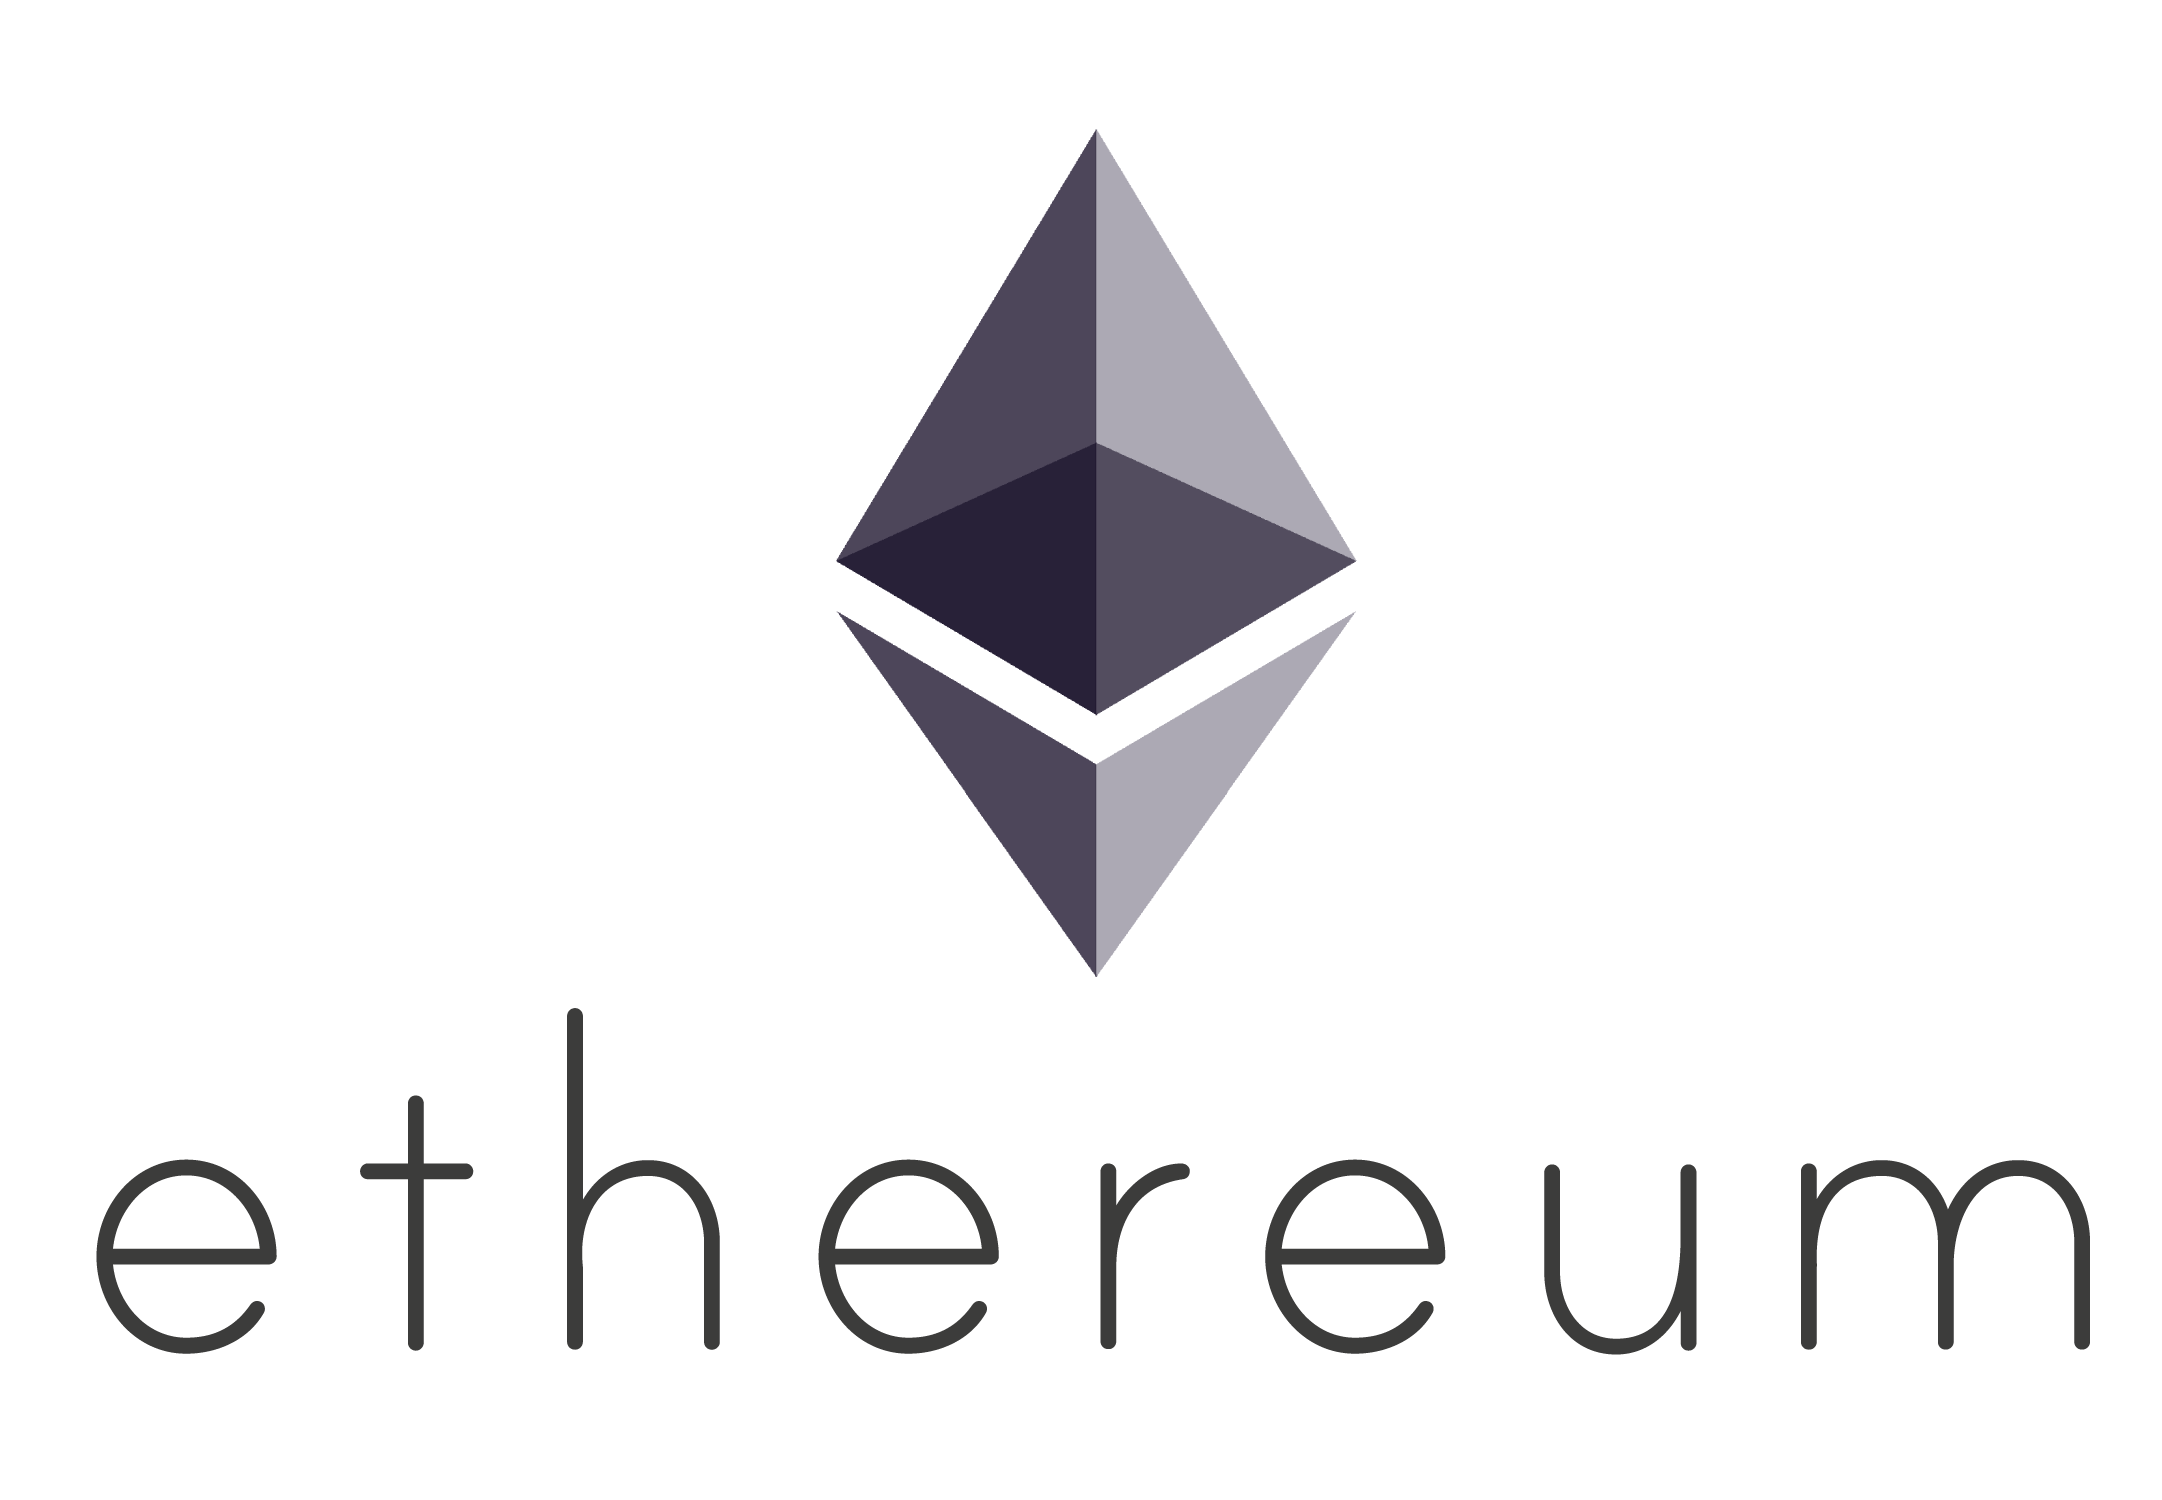 Ethereum payment method